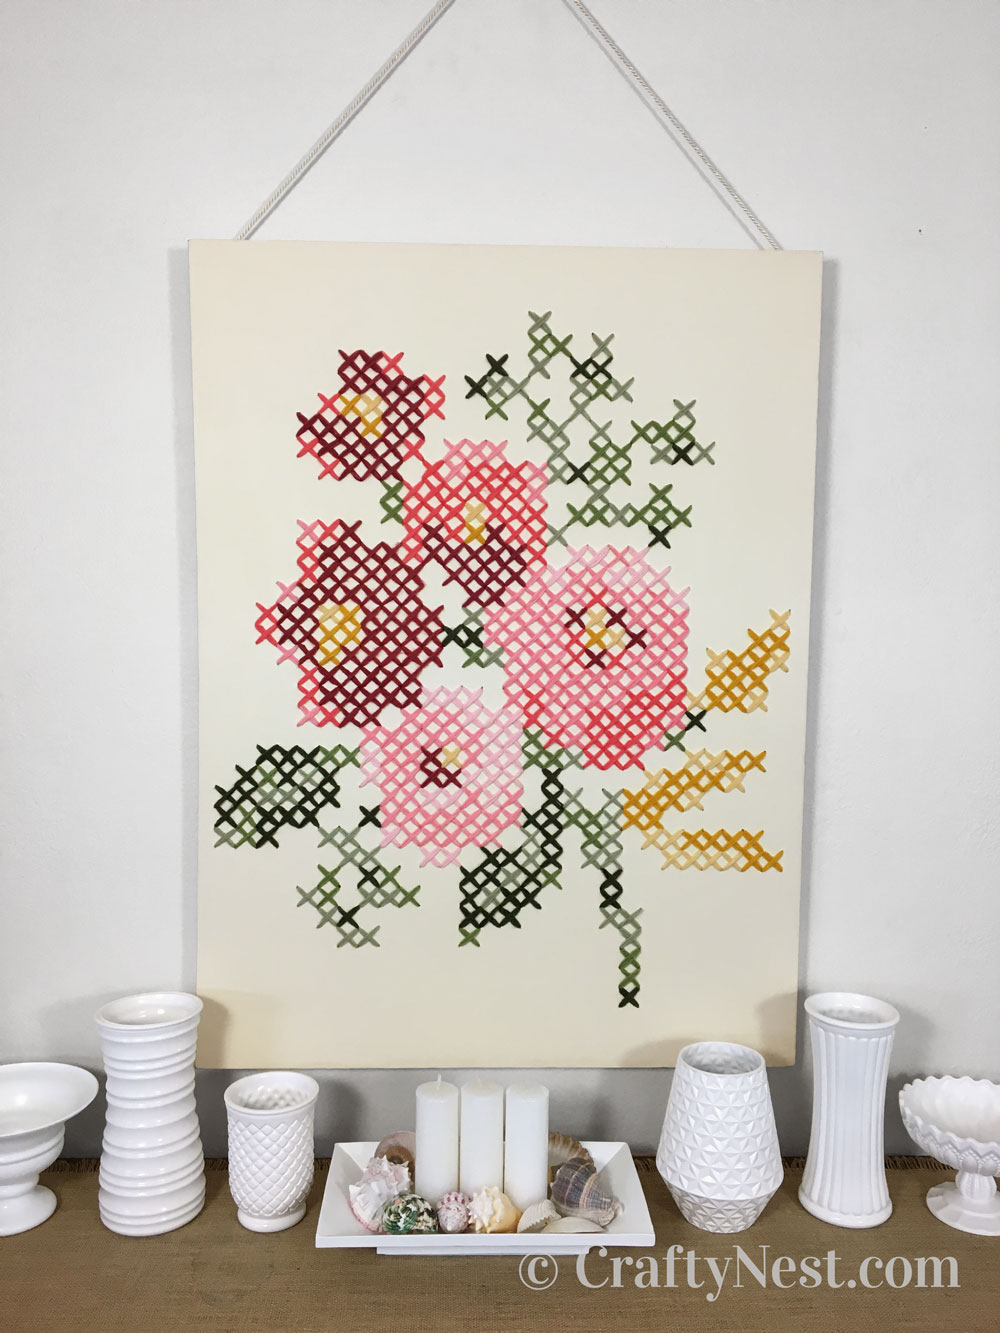 Floral cross-stich on a large canvas, photo